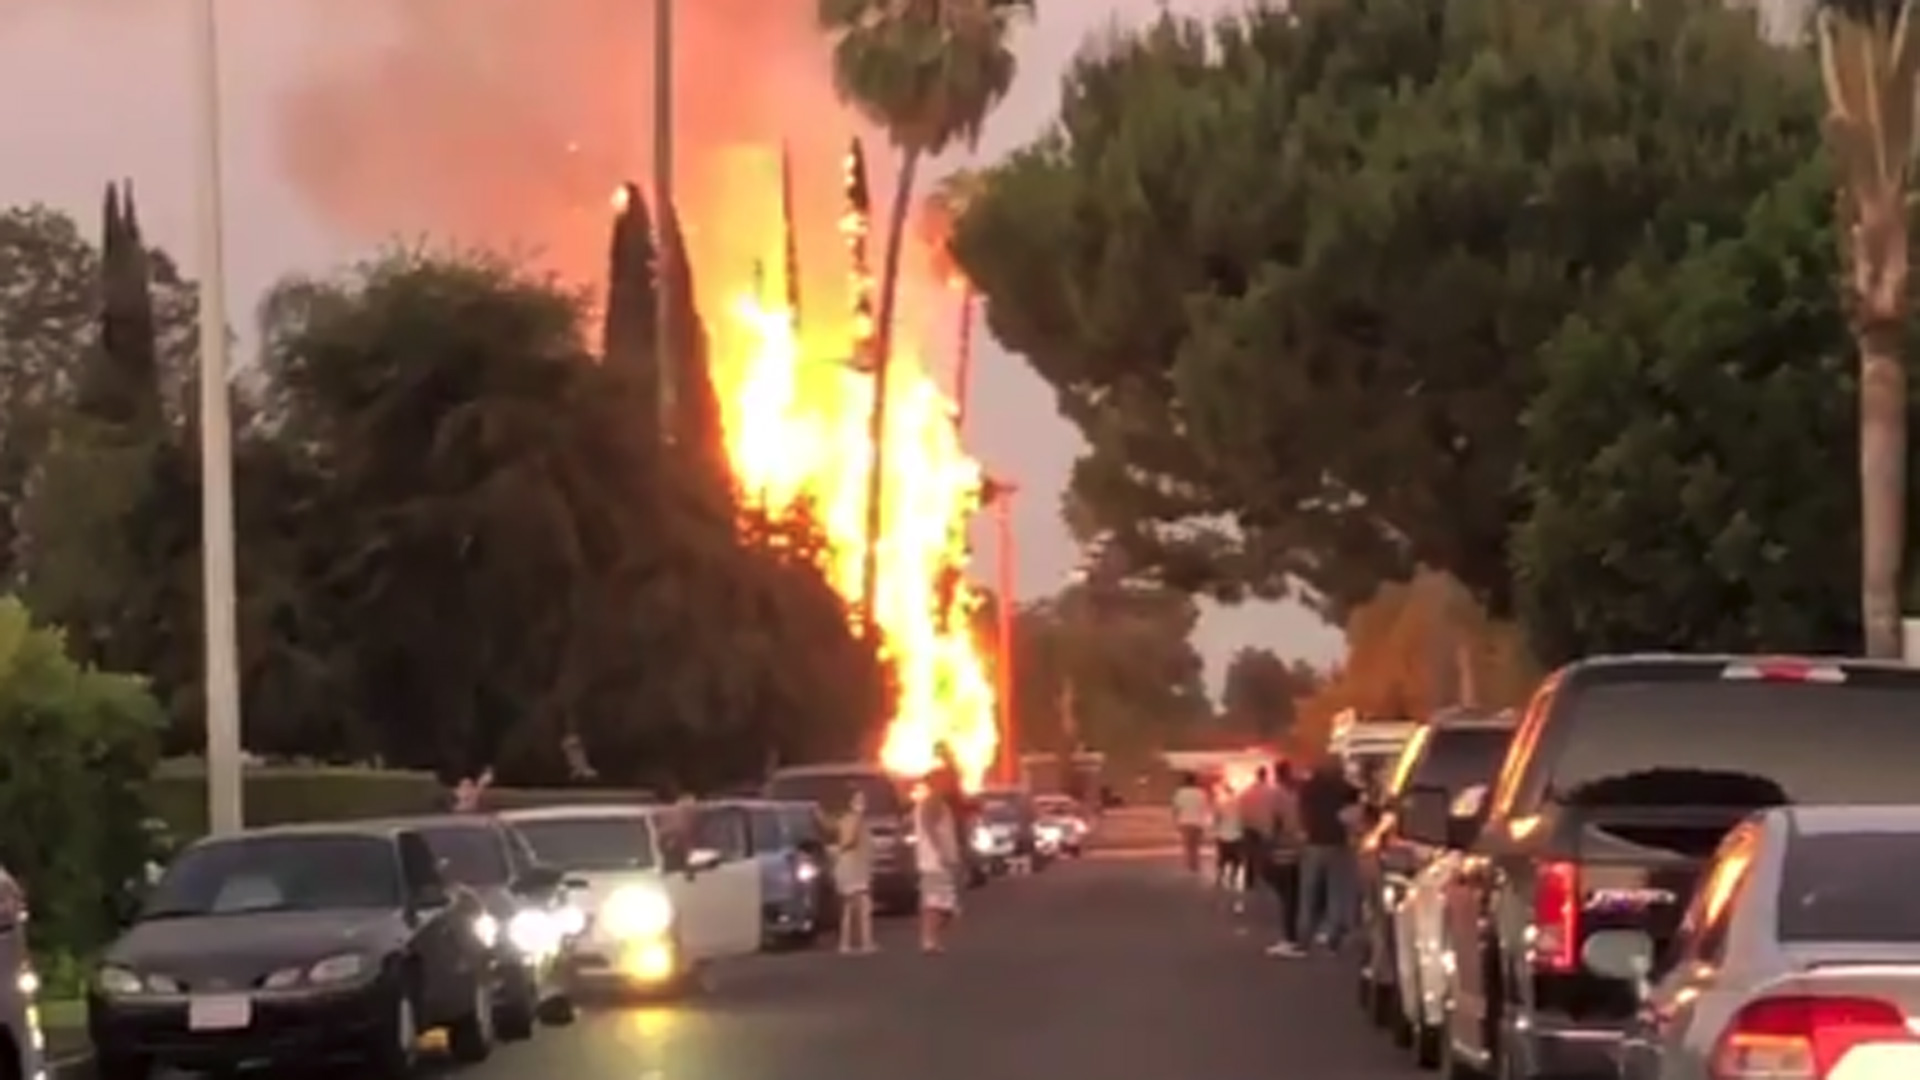 The San Dimas Sheriff's Station posted a video on Twitter on July 5, 2020, after trees caught fire after people lit illegal fireworks.